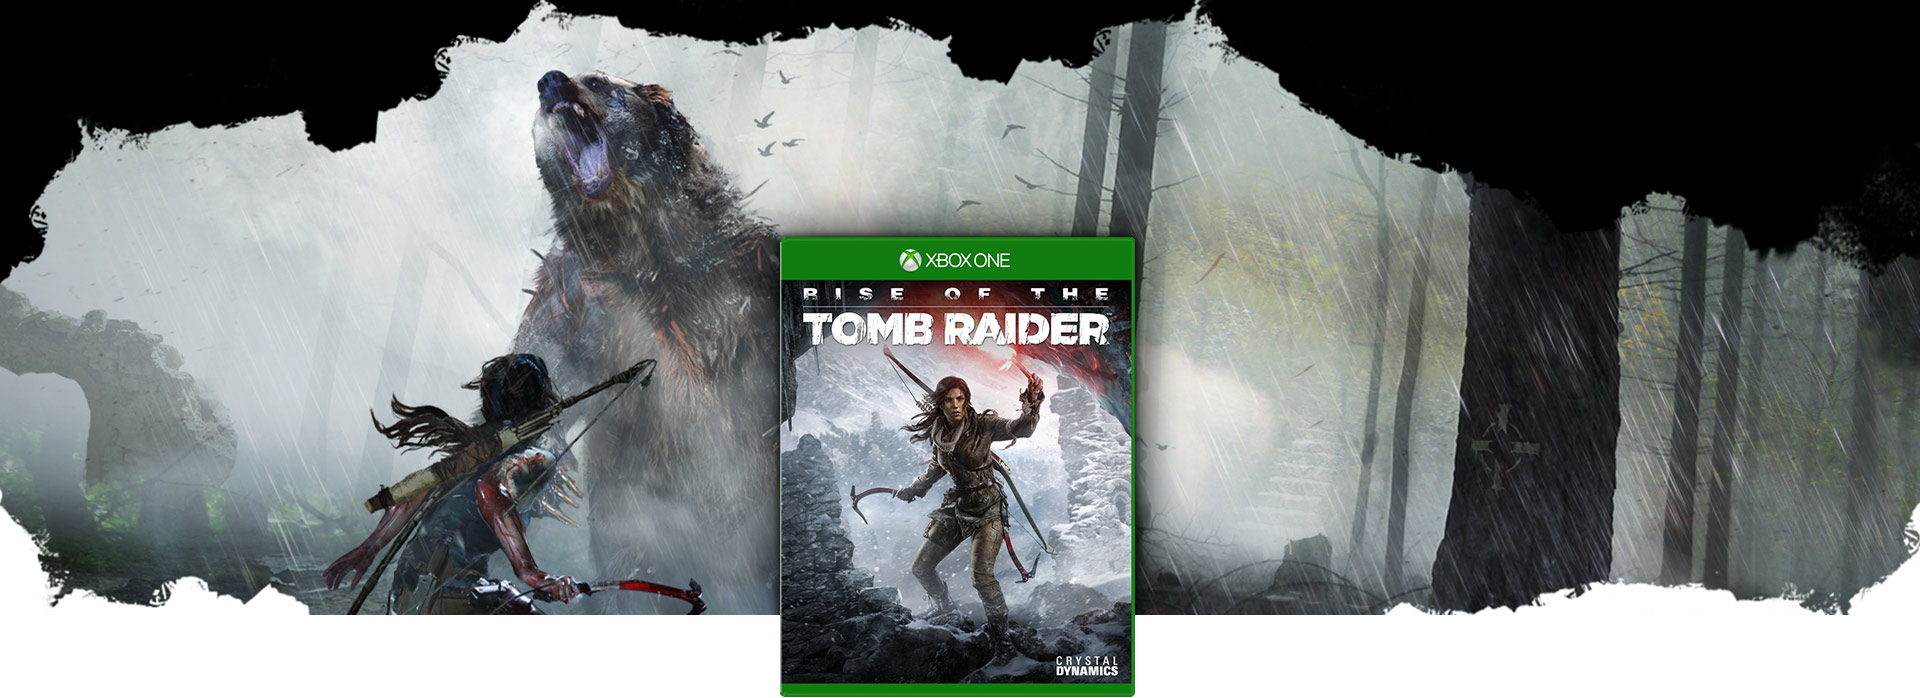 Rise of the Tomb Raider-coverbillede